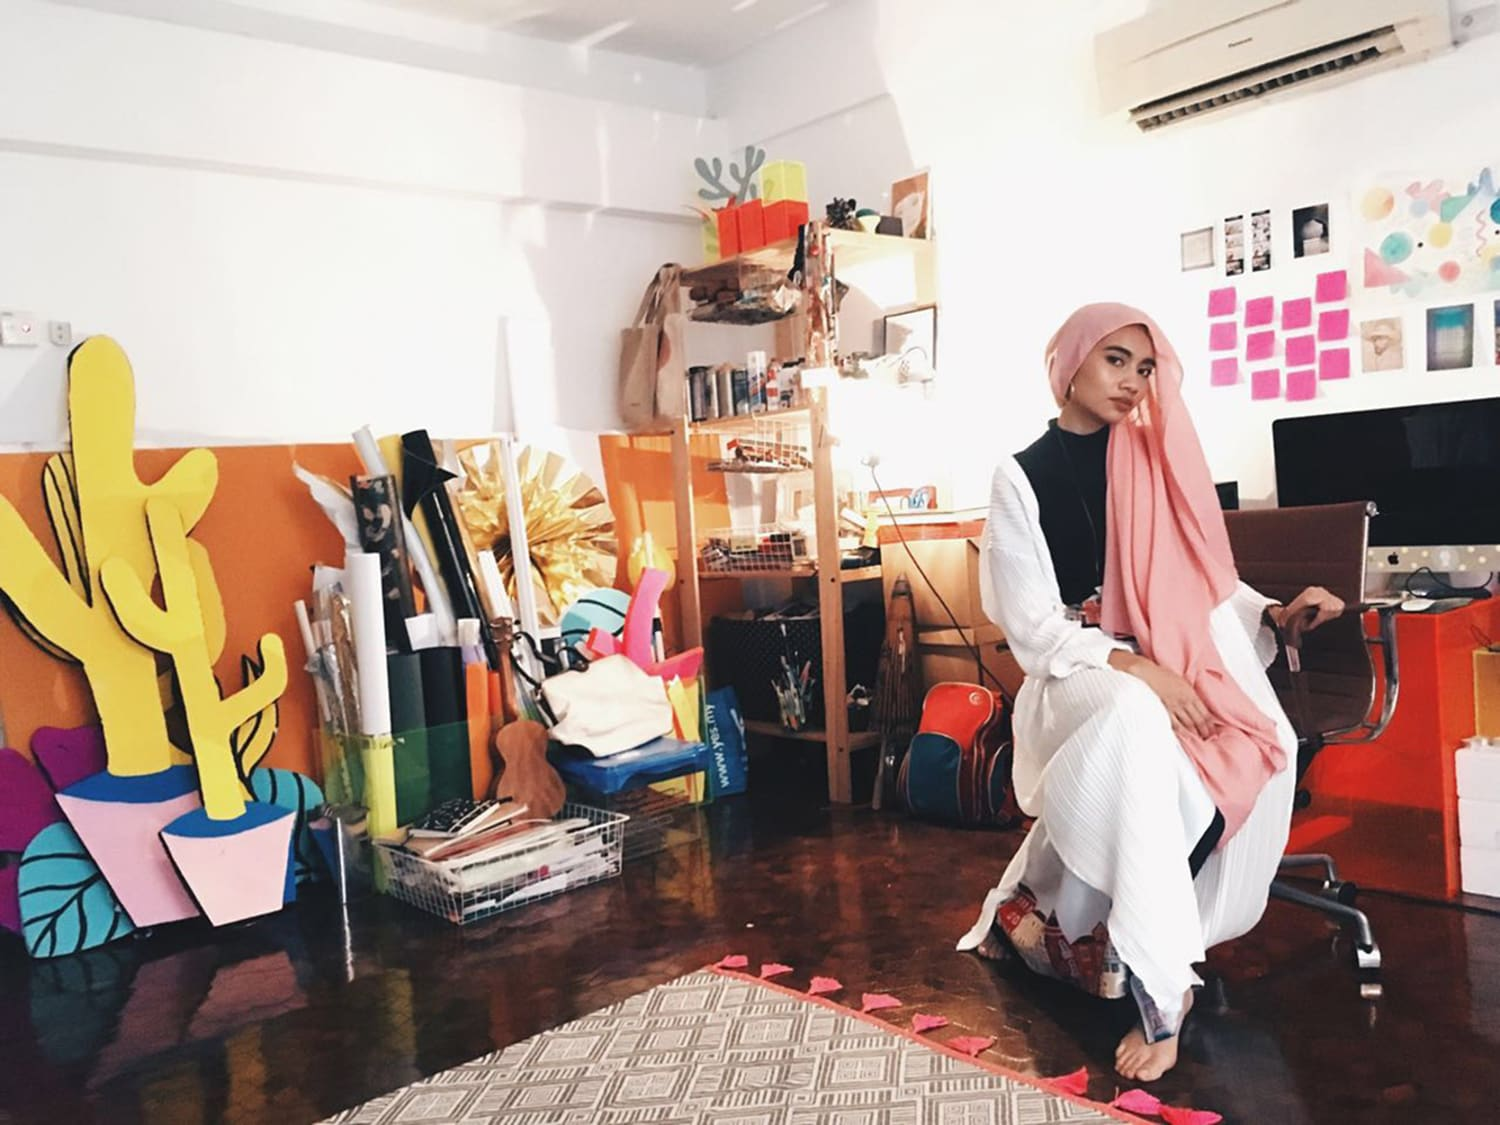 Malaysian pop singer songwriter Yuna sitting on a chair in her fashion studio